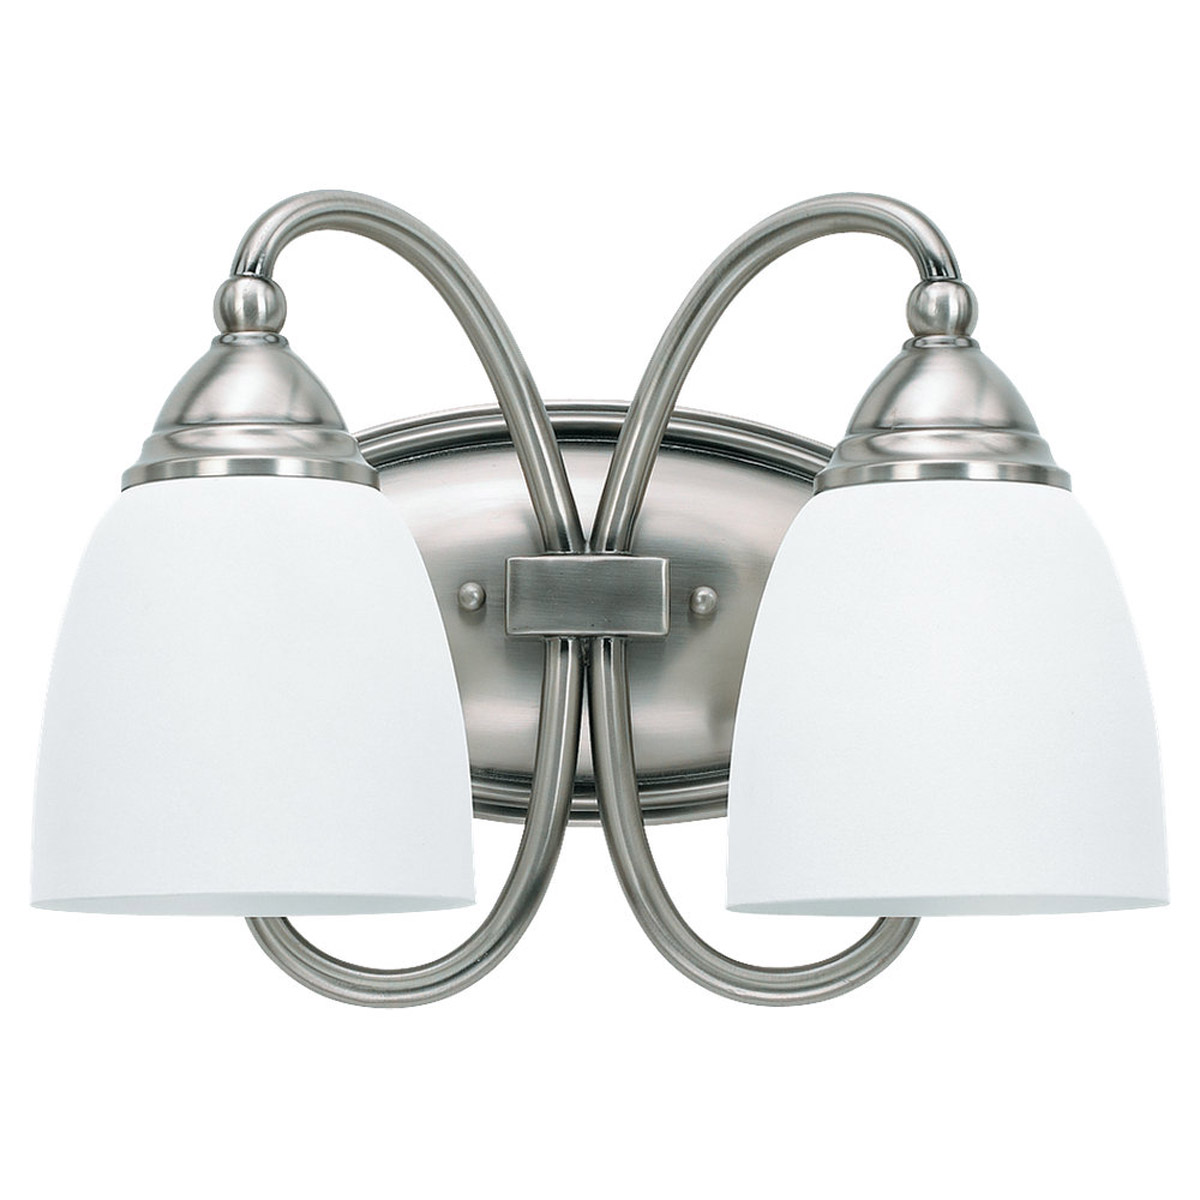 Sea Gull Lighting Montclaire 2 Light Bath Vanity in Antique Brushed Nickel 44105BLE-965